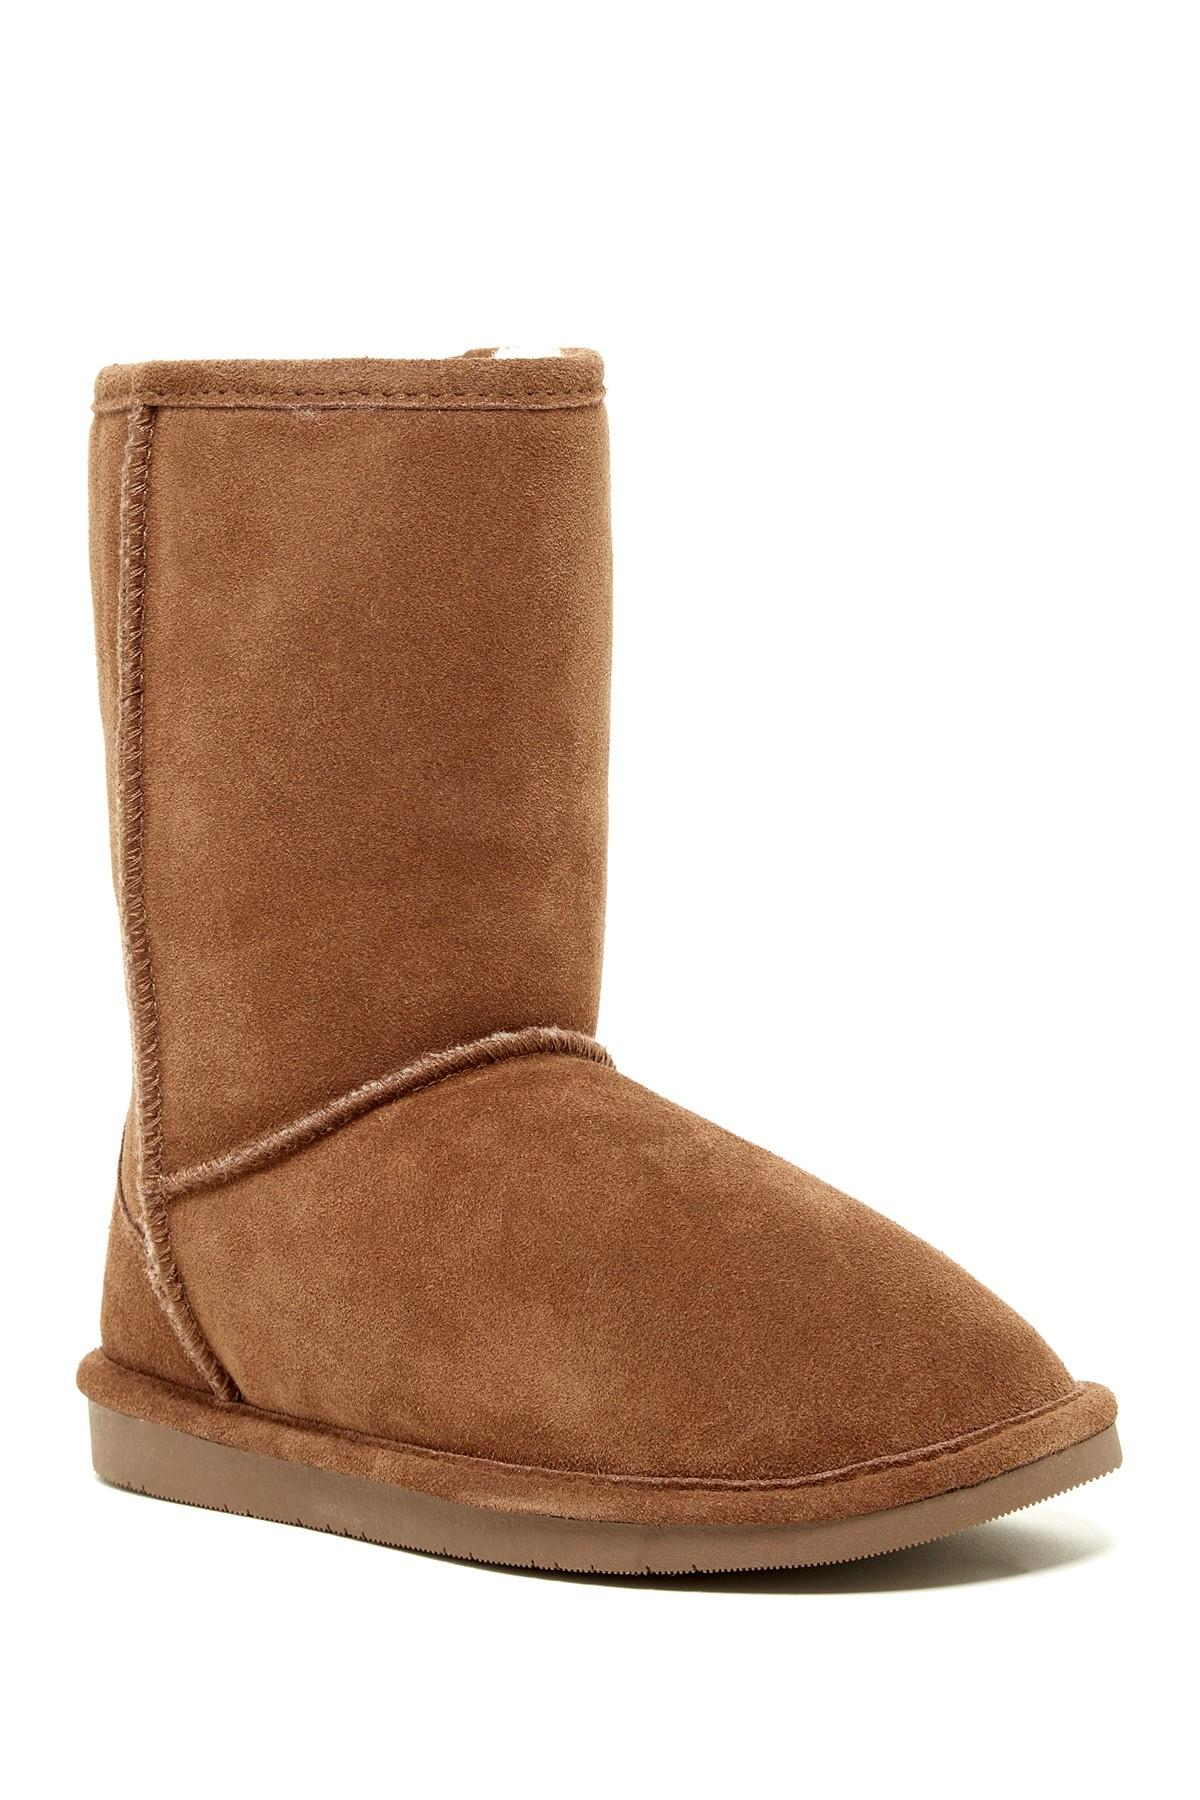 From $9.9 Winter Boots On Sale @ Nordstrom Rack